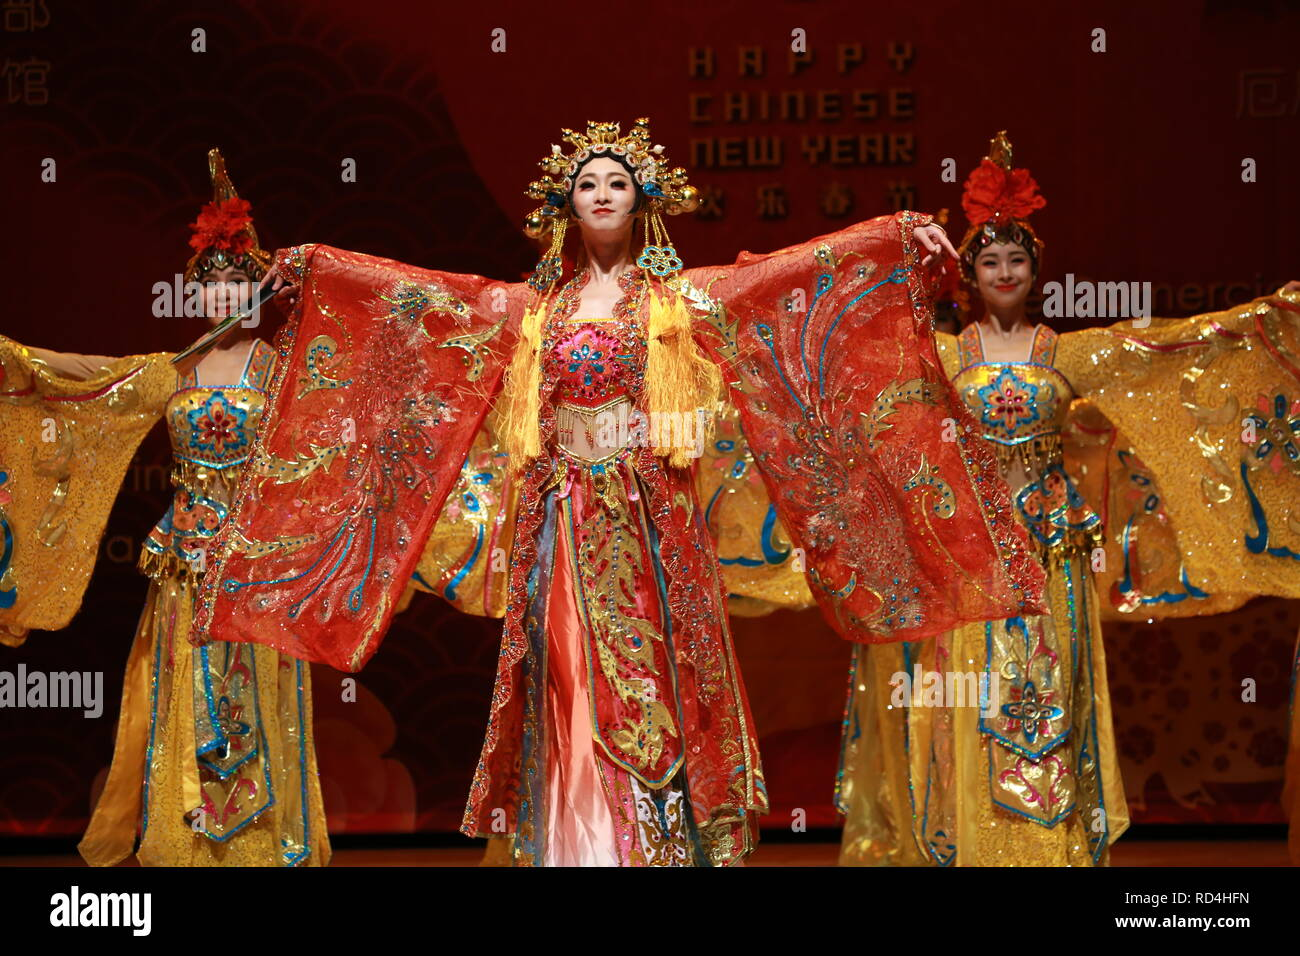 Quito, Ecuador. 16th Jan, 2019. Dancers from China National Opera and Dance Drama Theater perform in celebrations for the upcoming Spring Festival in Quito, capital of Ecuador, Jan. 16, 2019. Credit: Hao Yunfu/Xinhua/Alamy Live News - Stock Image